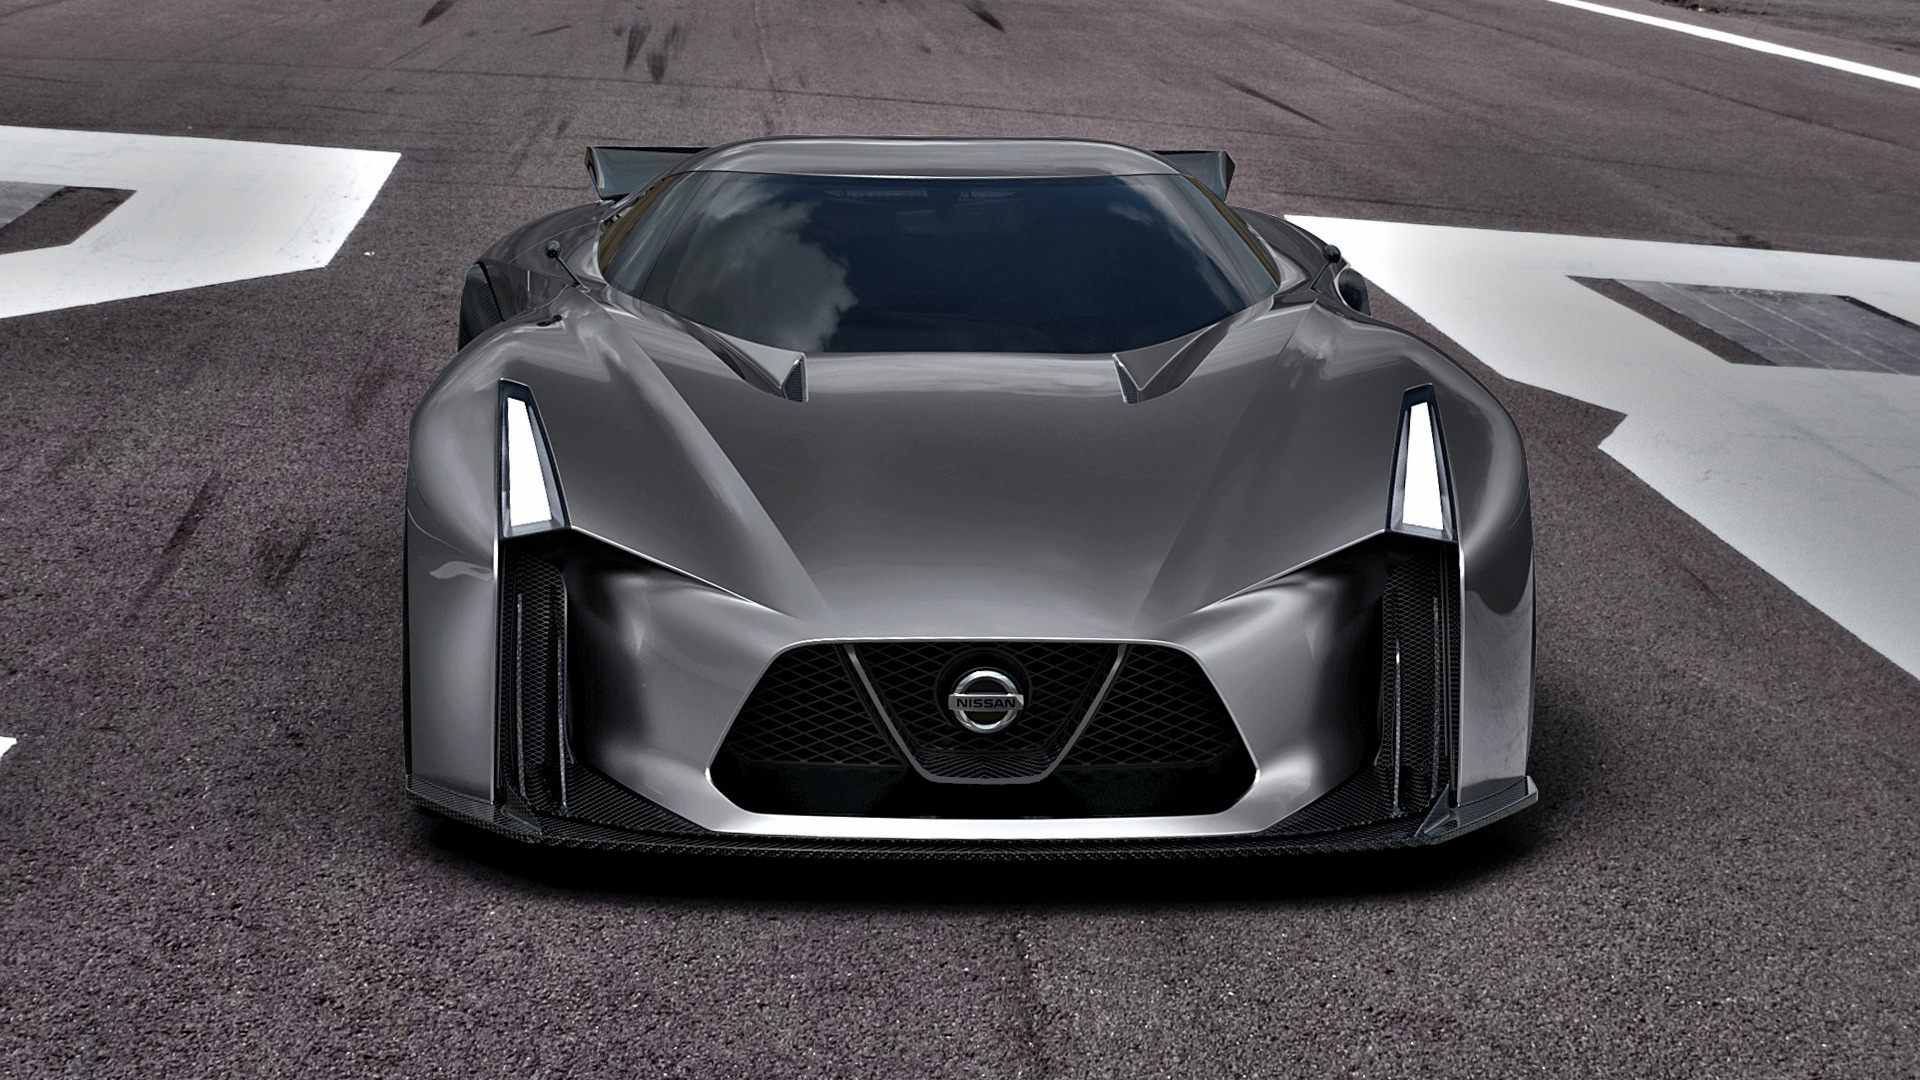 1920x1080 - Nissan Concept Wallpapers 8